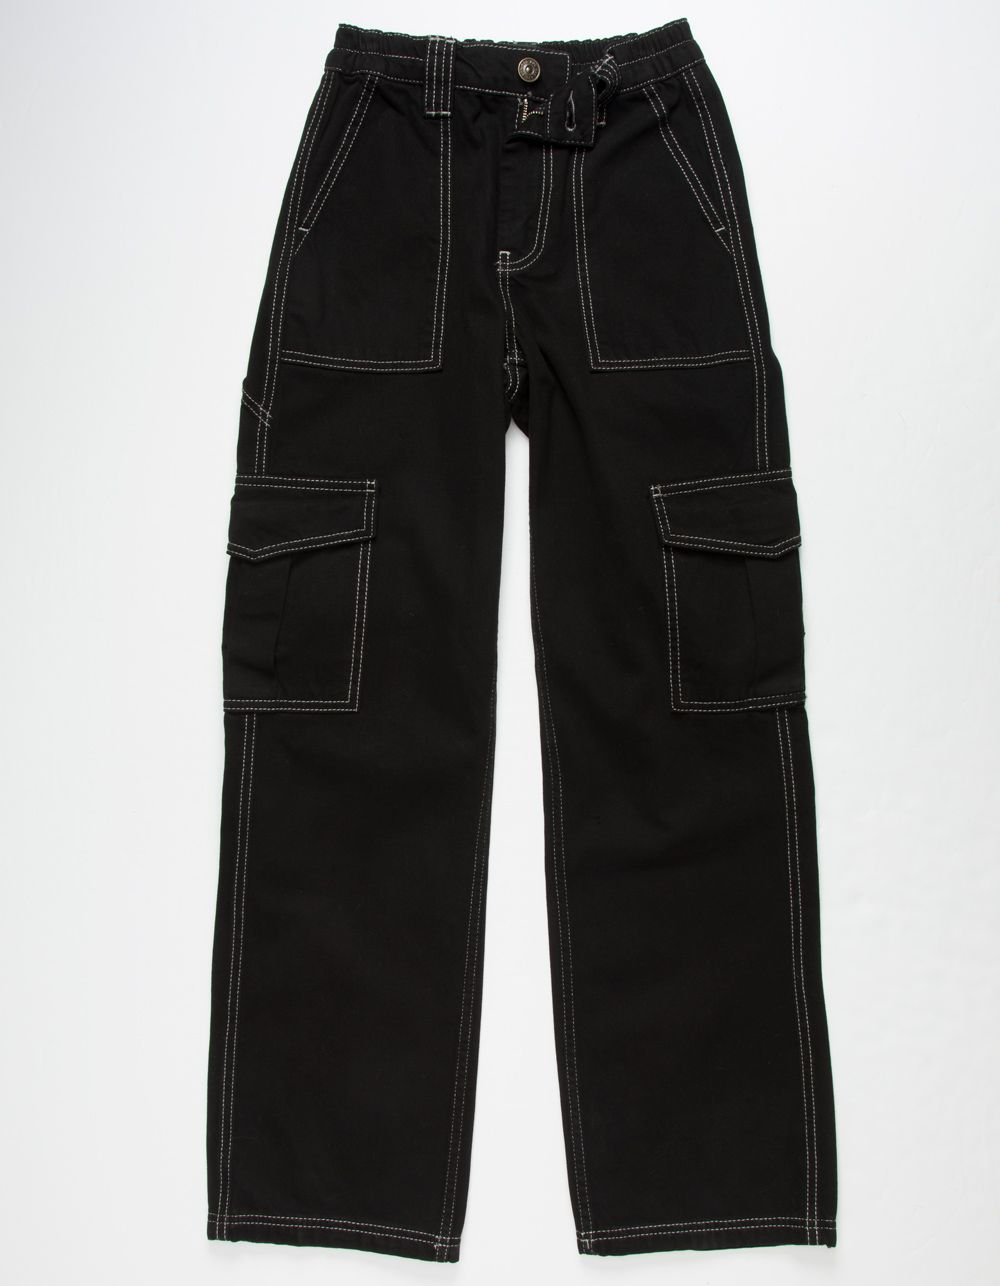 BDG Urban Outfitters Contrast Stitch Black Skate J